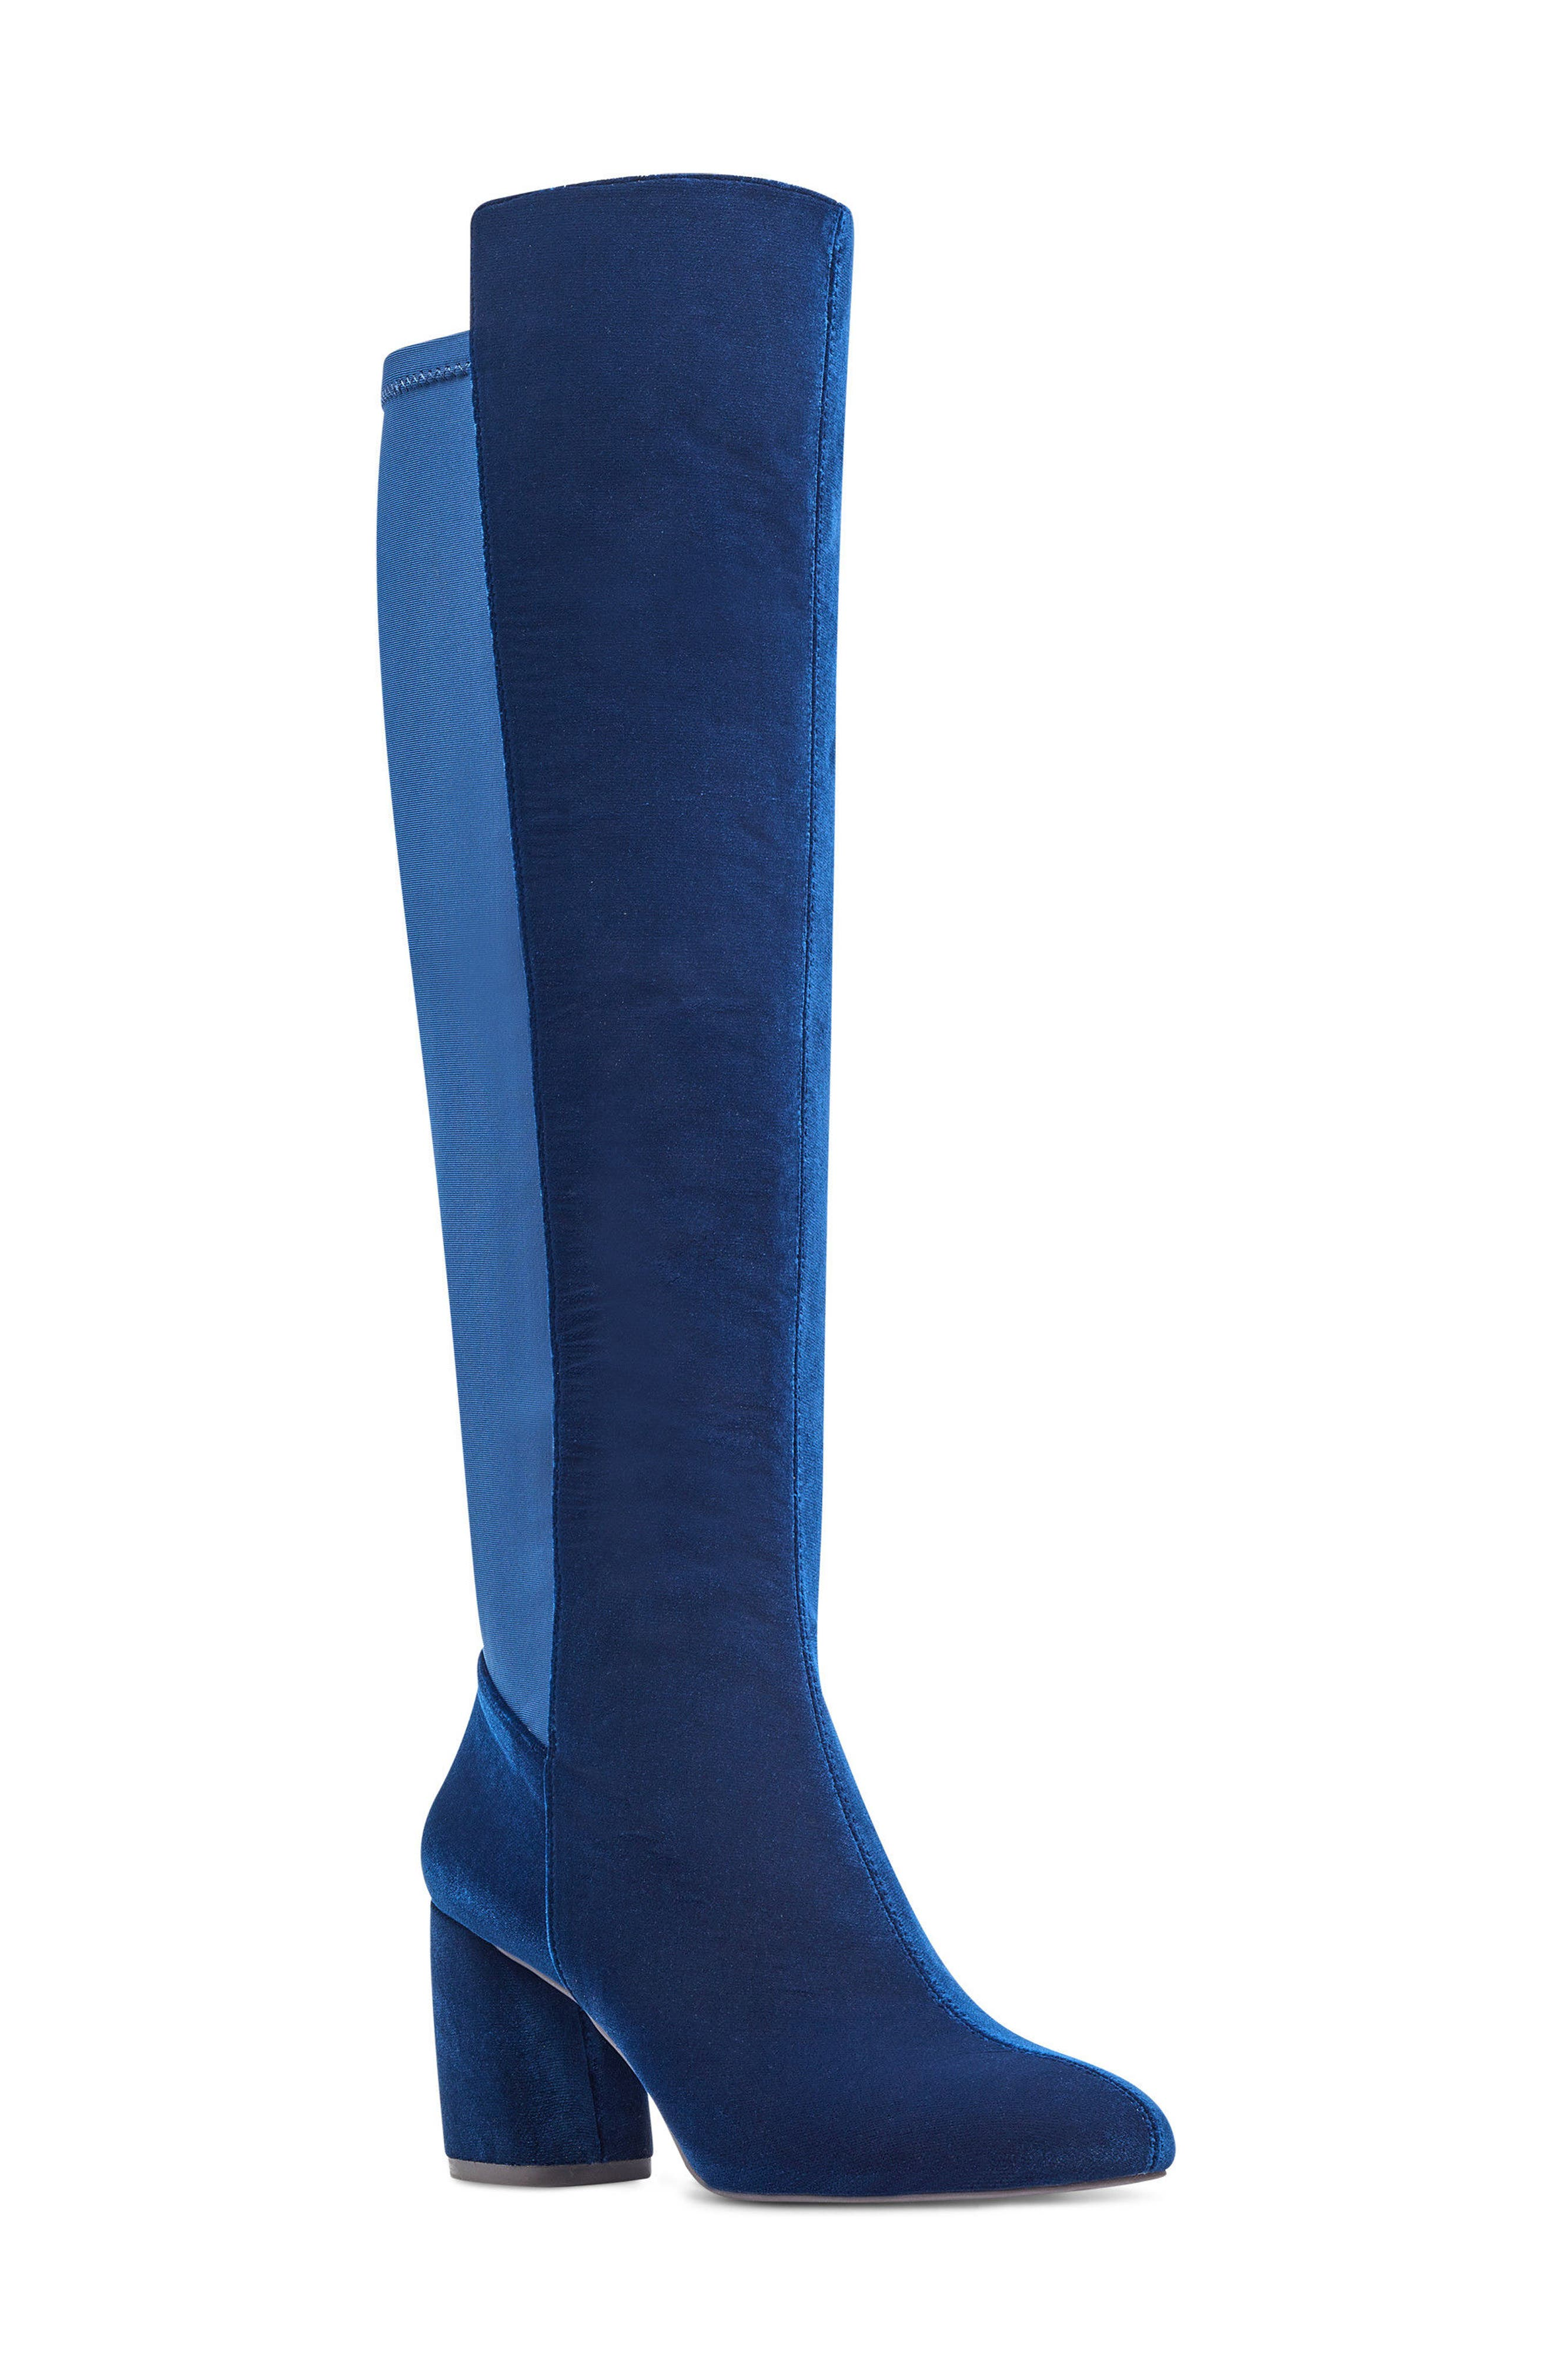 Alternate Image 1 Selected - Nine West Kerianna Knee High Boot (Women)